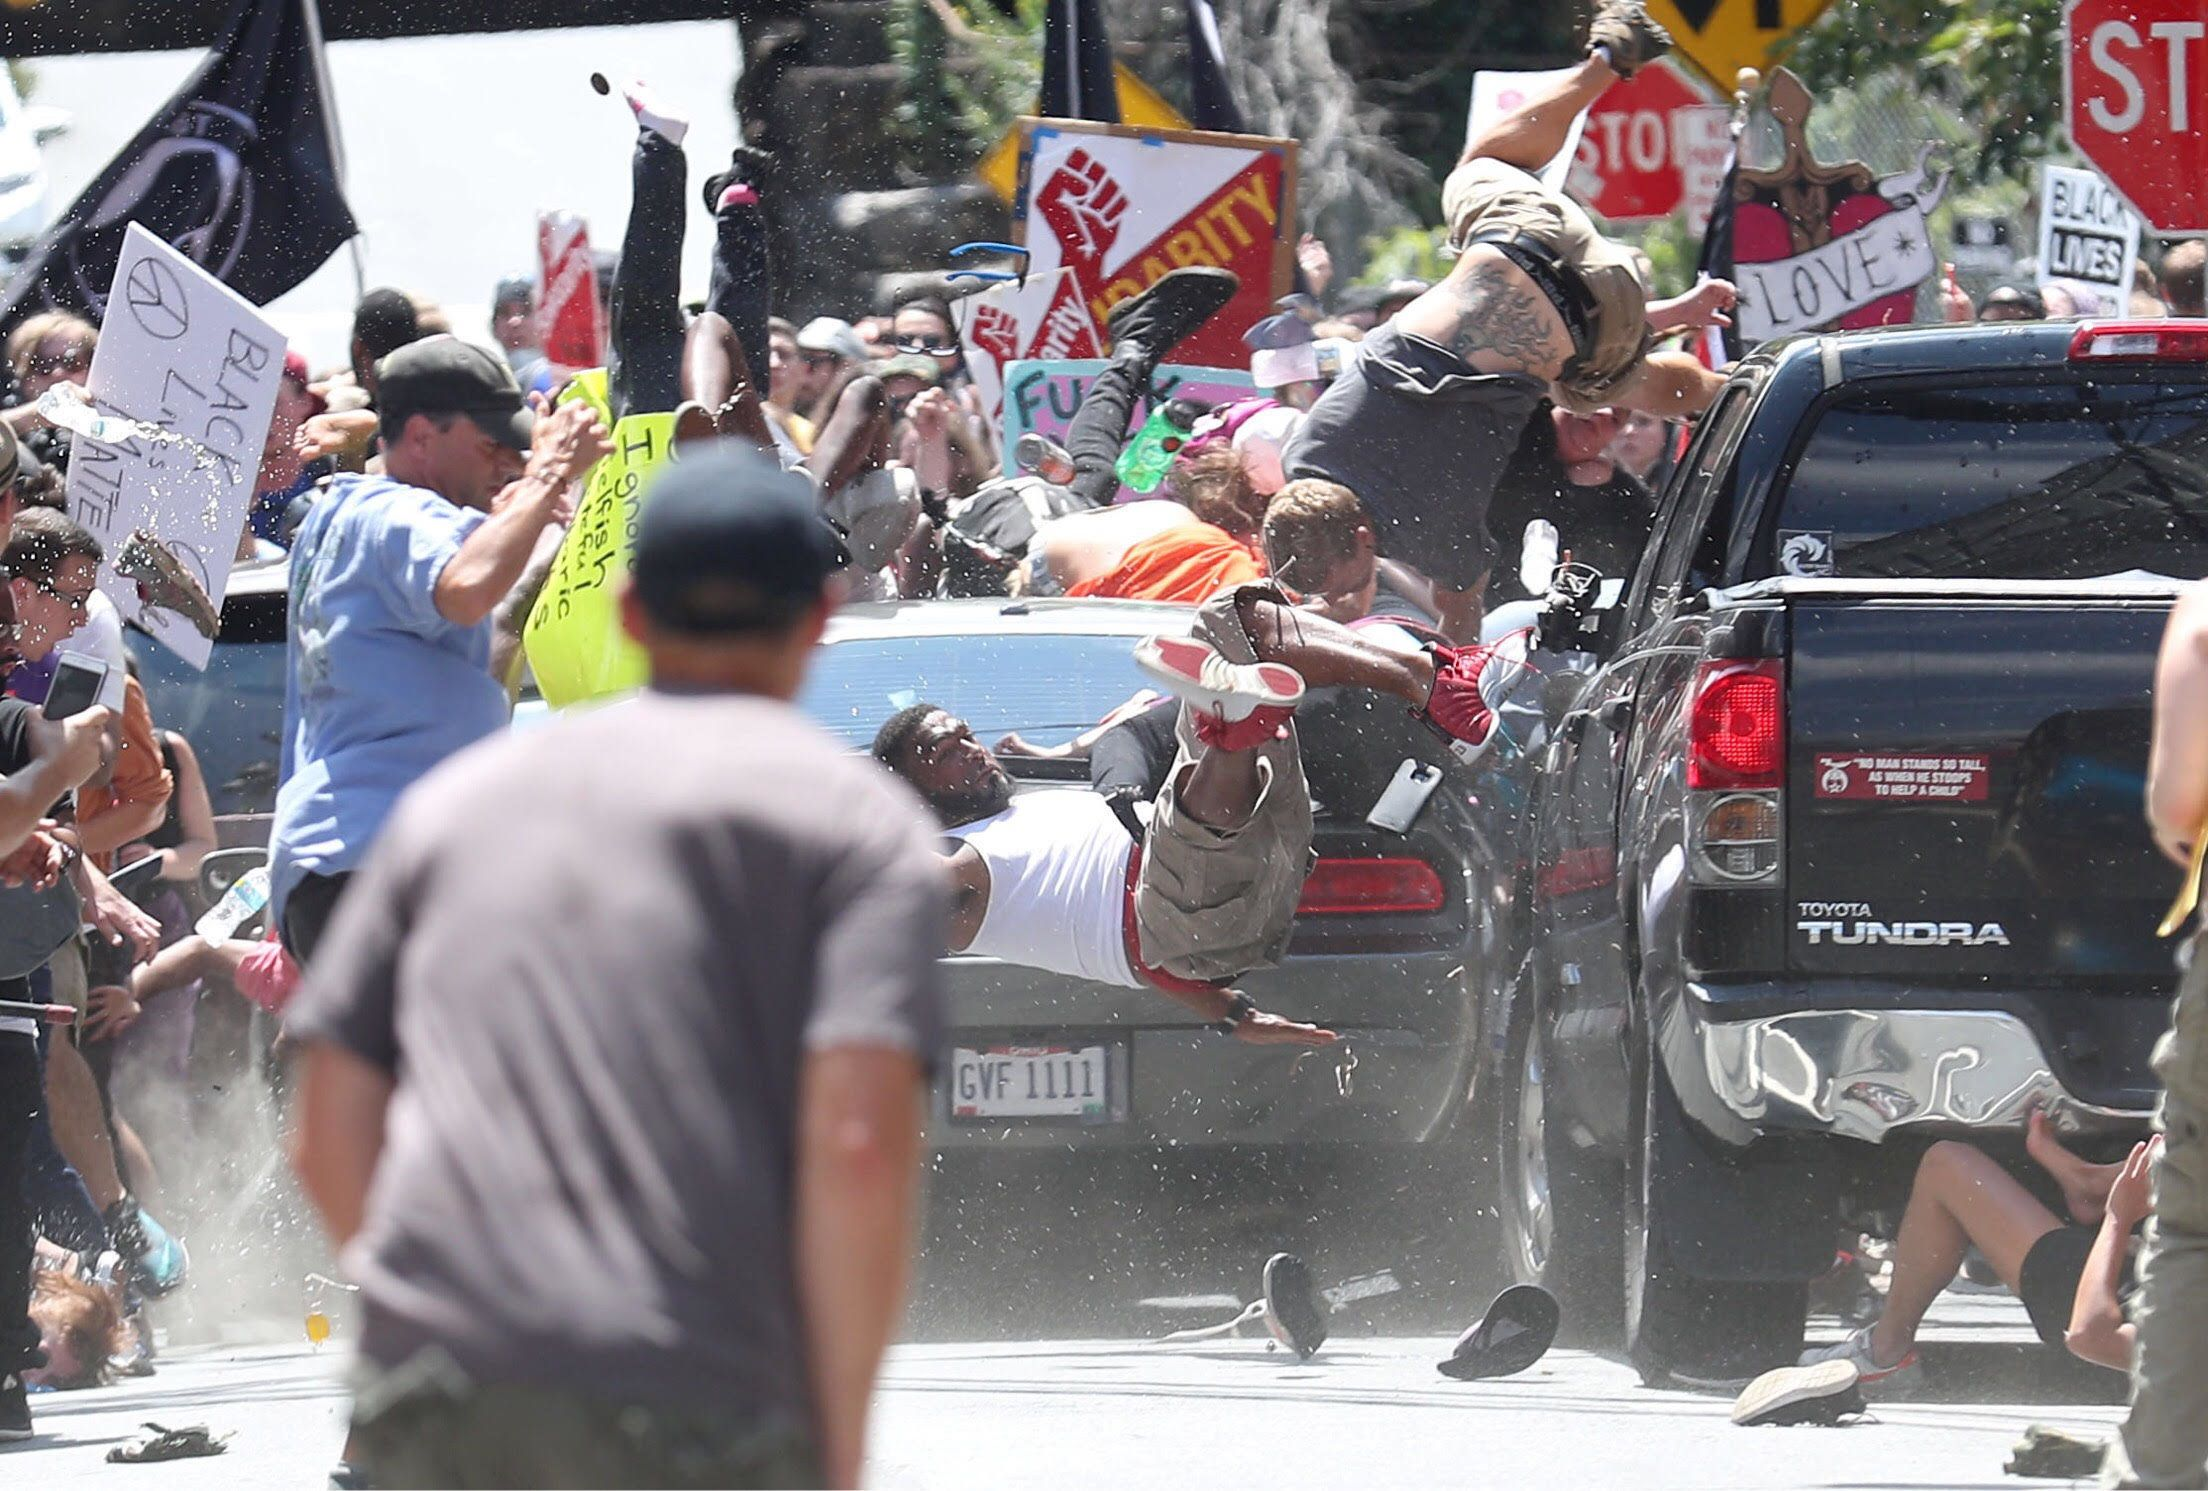 Crowd Rushes to Help After Car Crashes into Protesters in Charlottesville